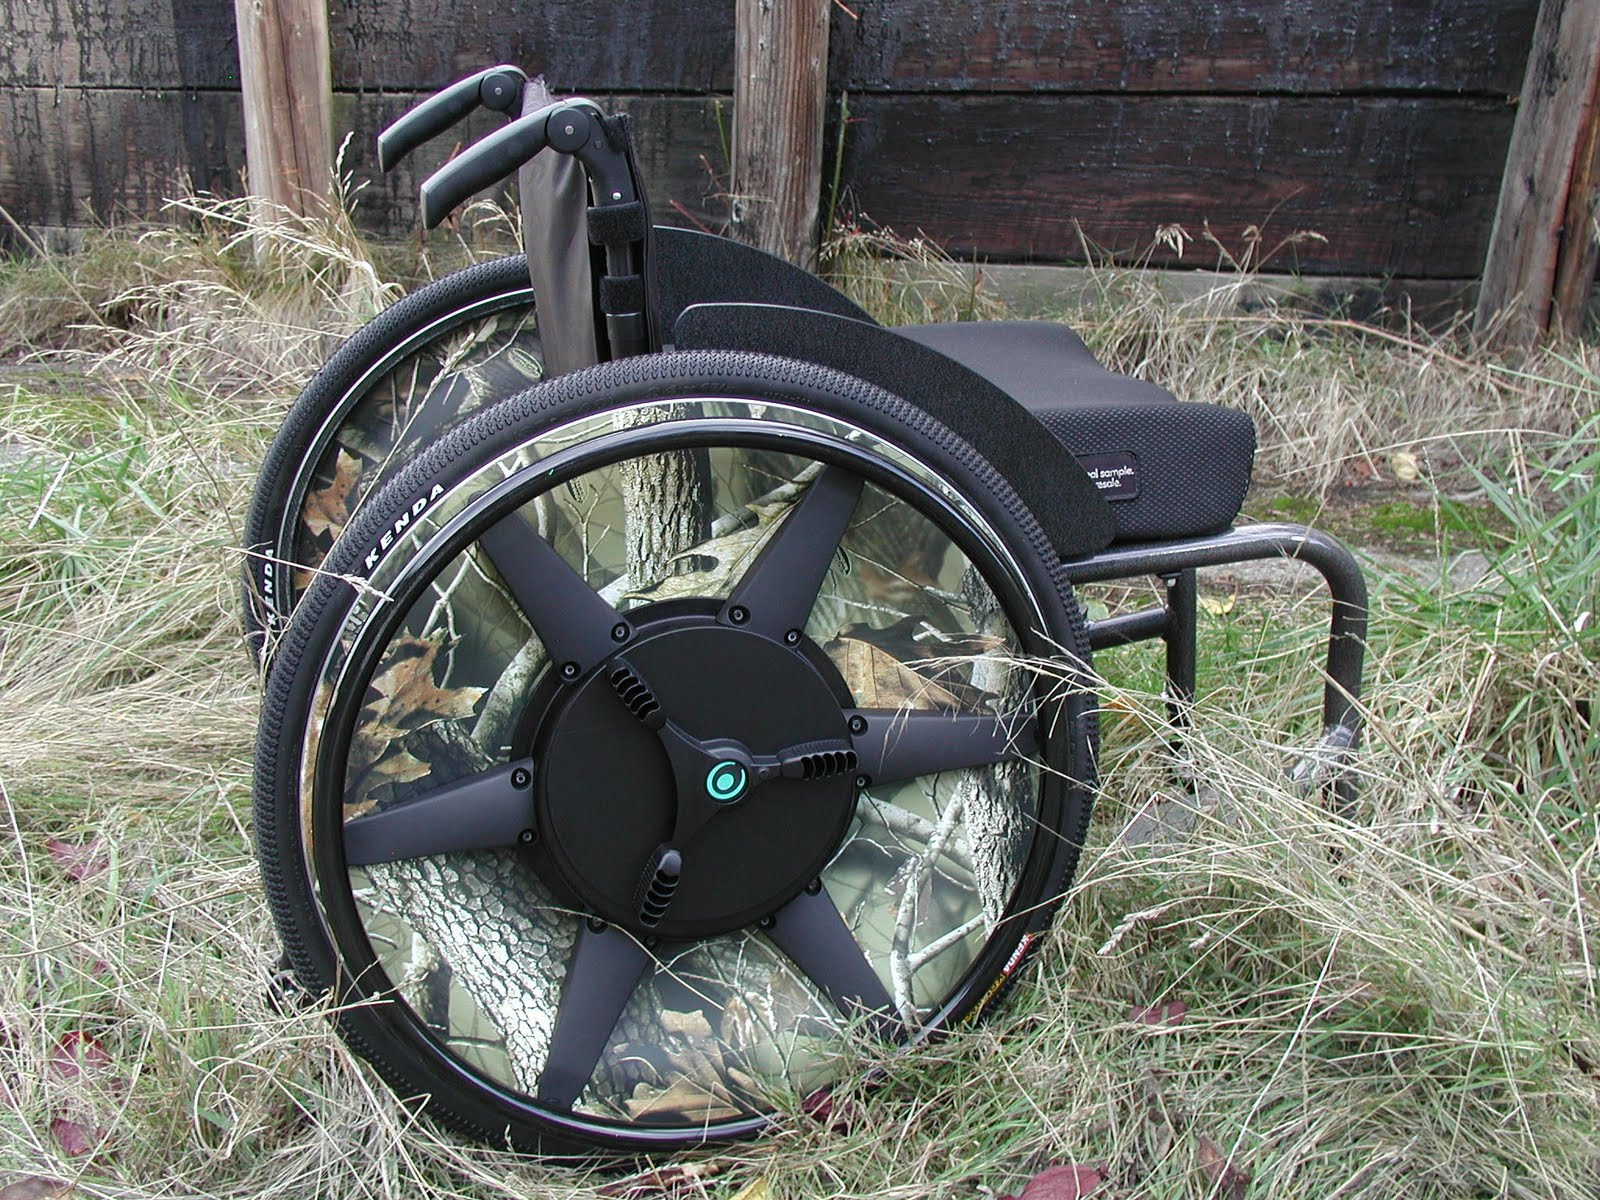 Pimped Out 2 Gear Wheelchair Wheels